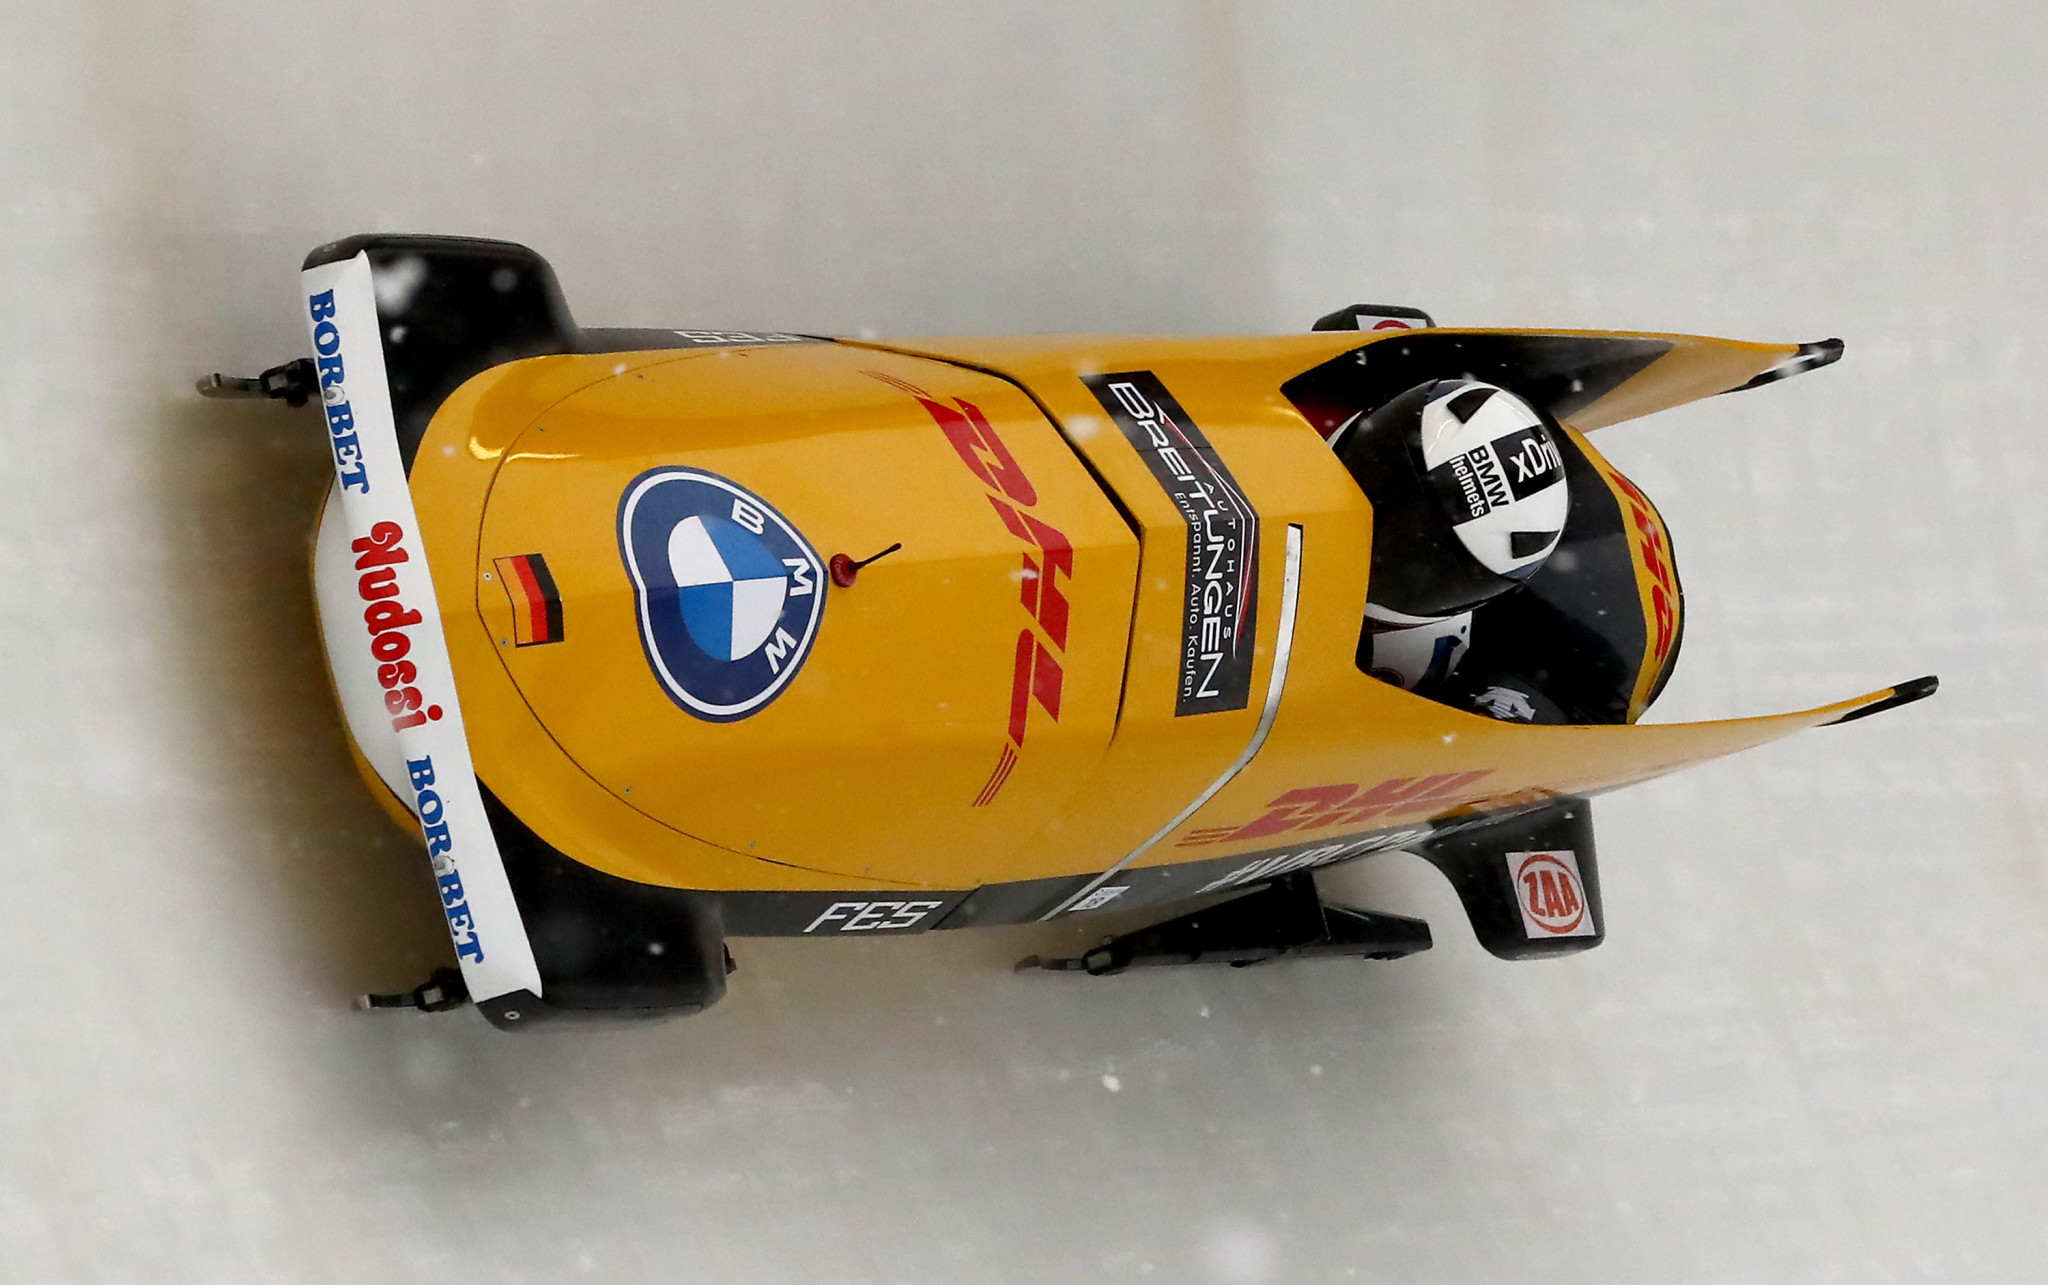 German bobsleigh pilot Hannighofer ruled out of 2021-2022 season with knee injury